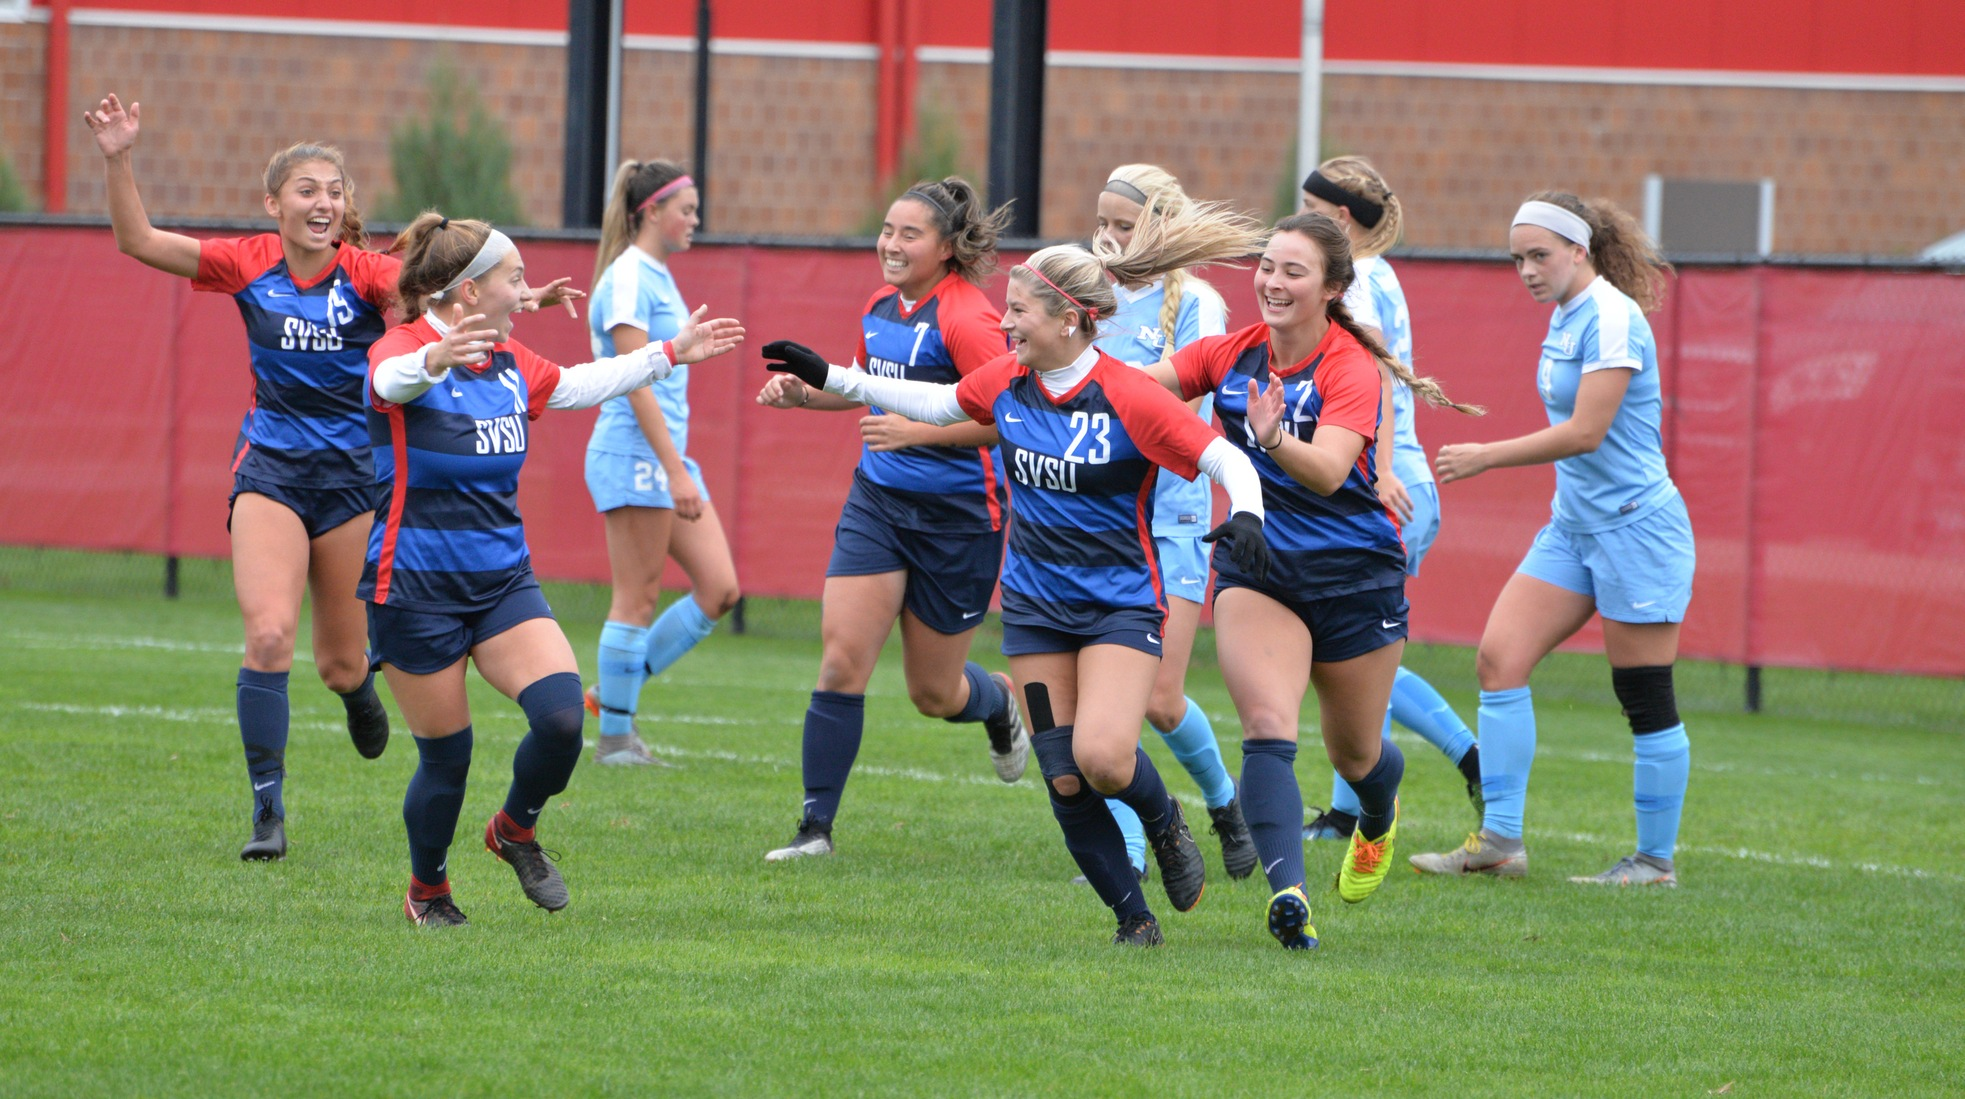 Women's Soccer registers 2-0 shutout over Northwood